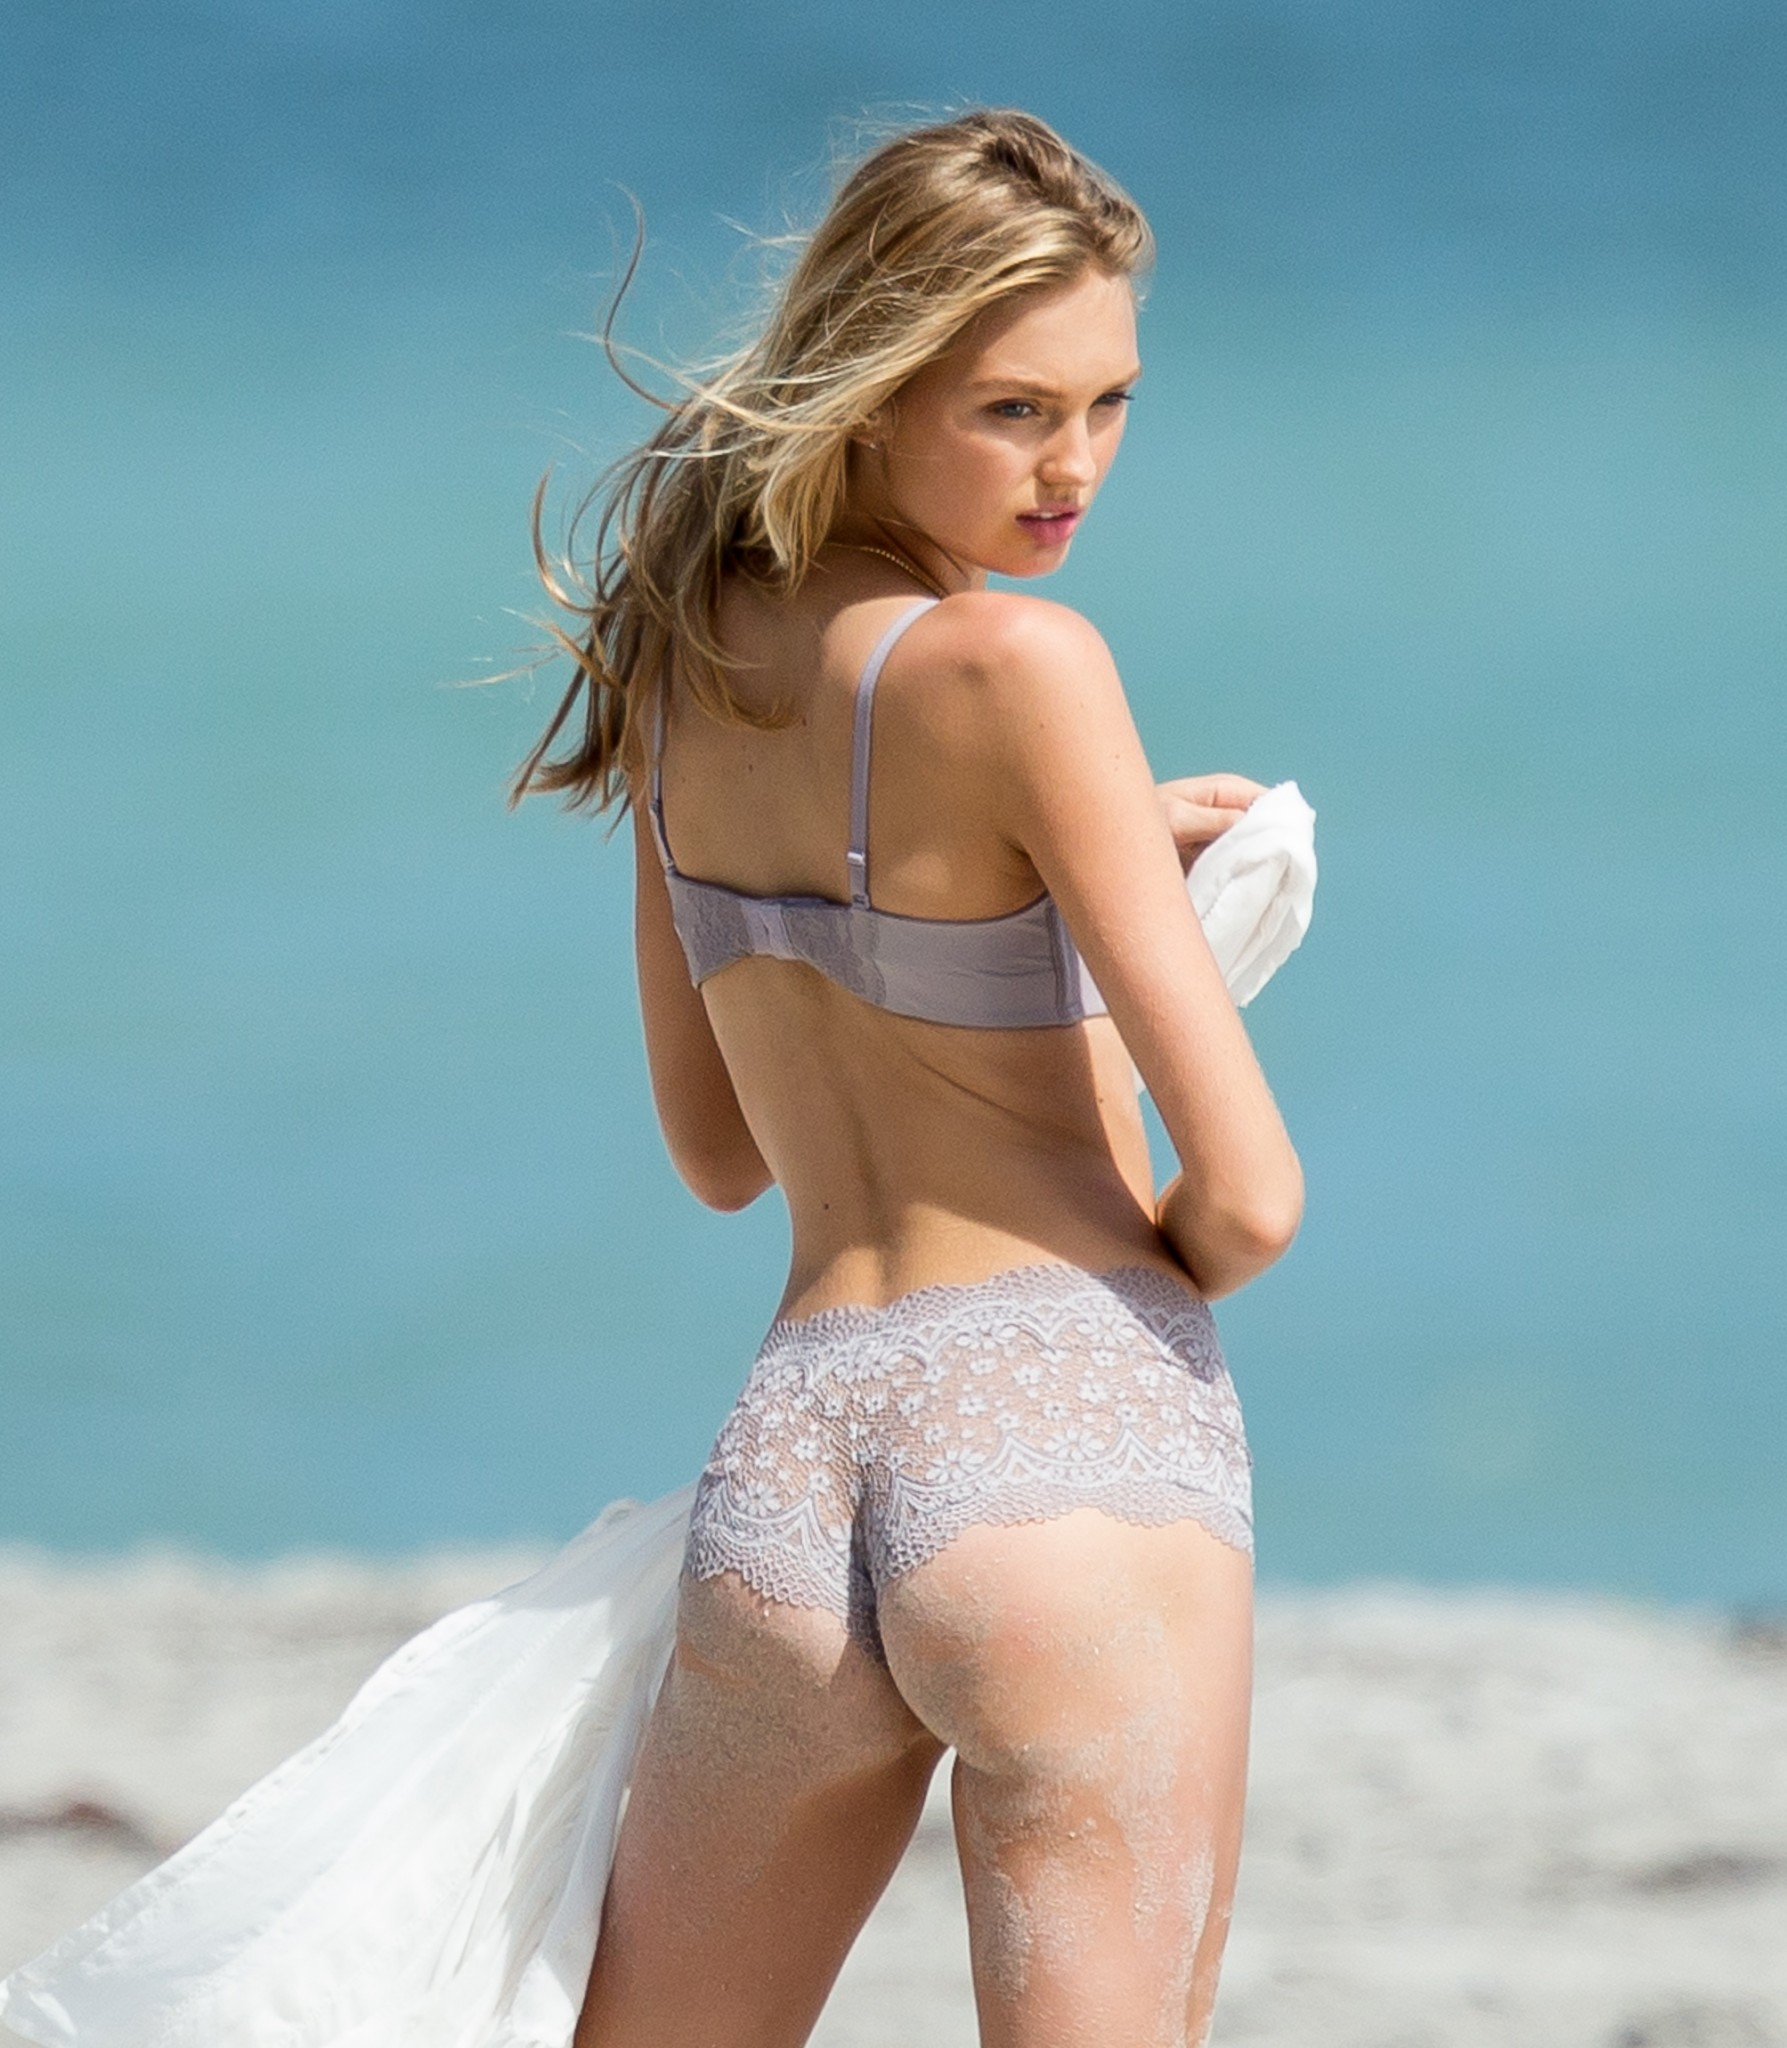 romee-strijd-victoria-s-secret-model-cameltoe-thong-bikini-in-miami-12